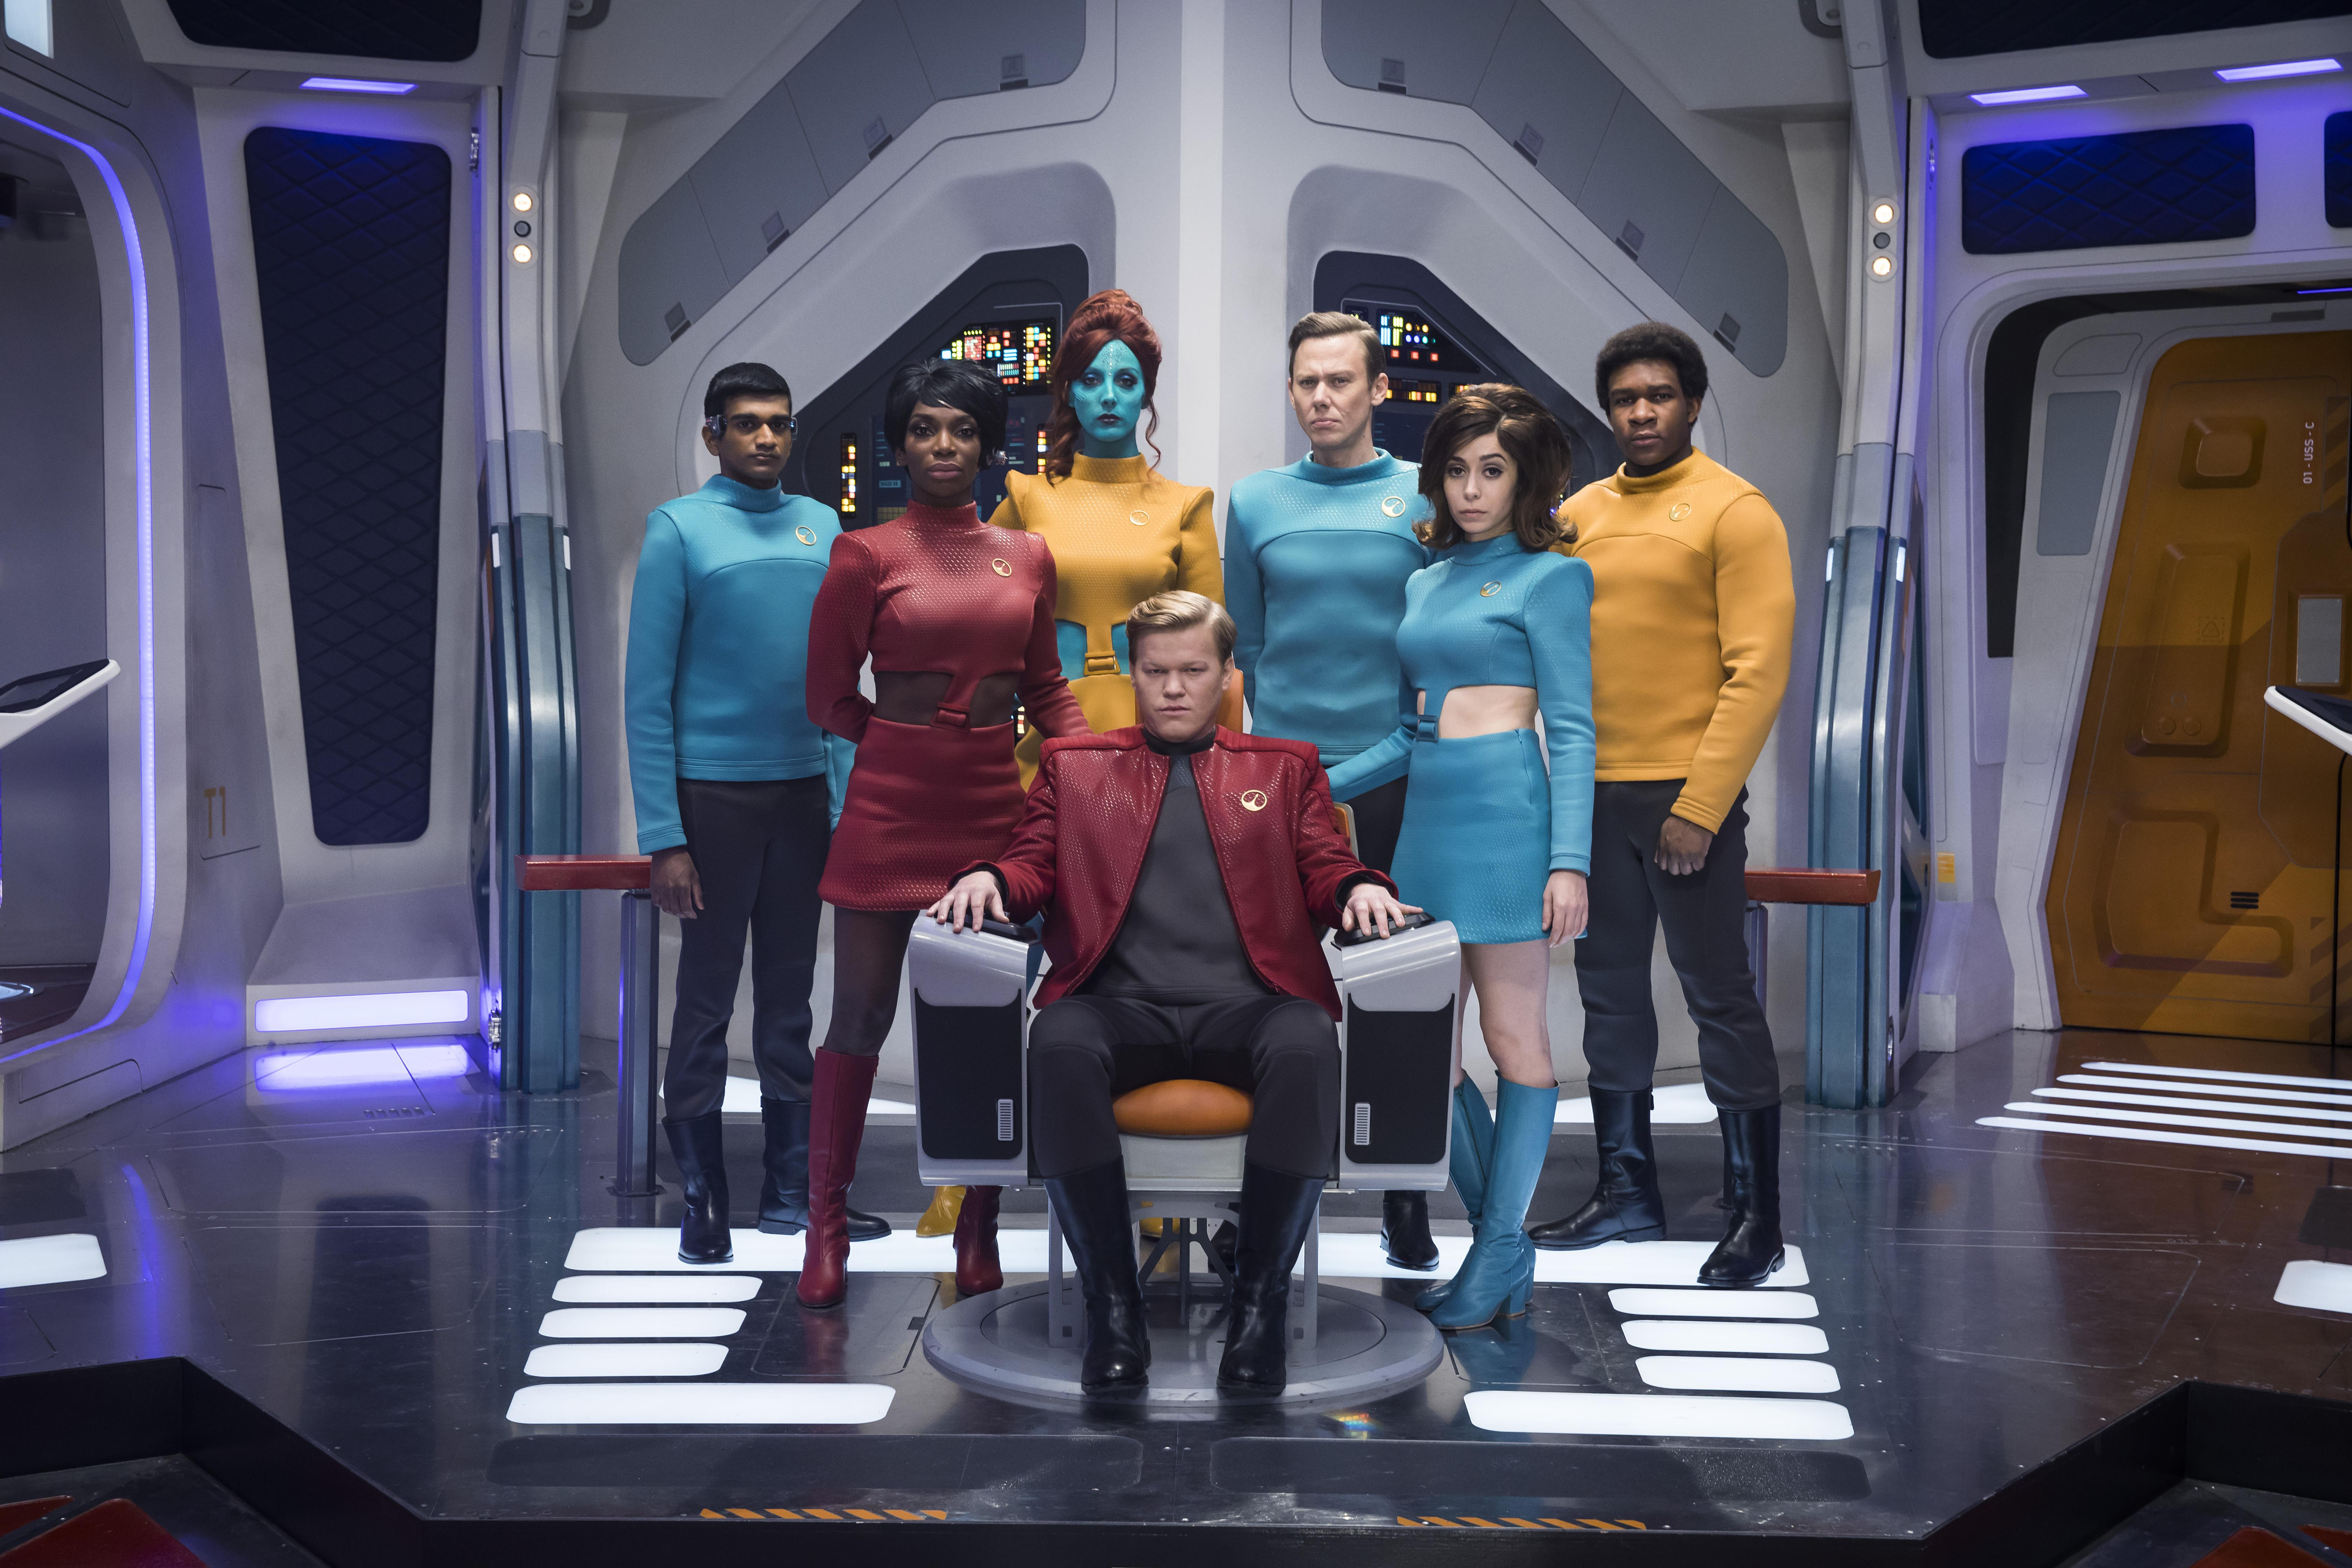 Black Mirror Season 4 release date rumors